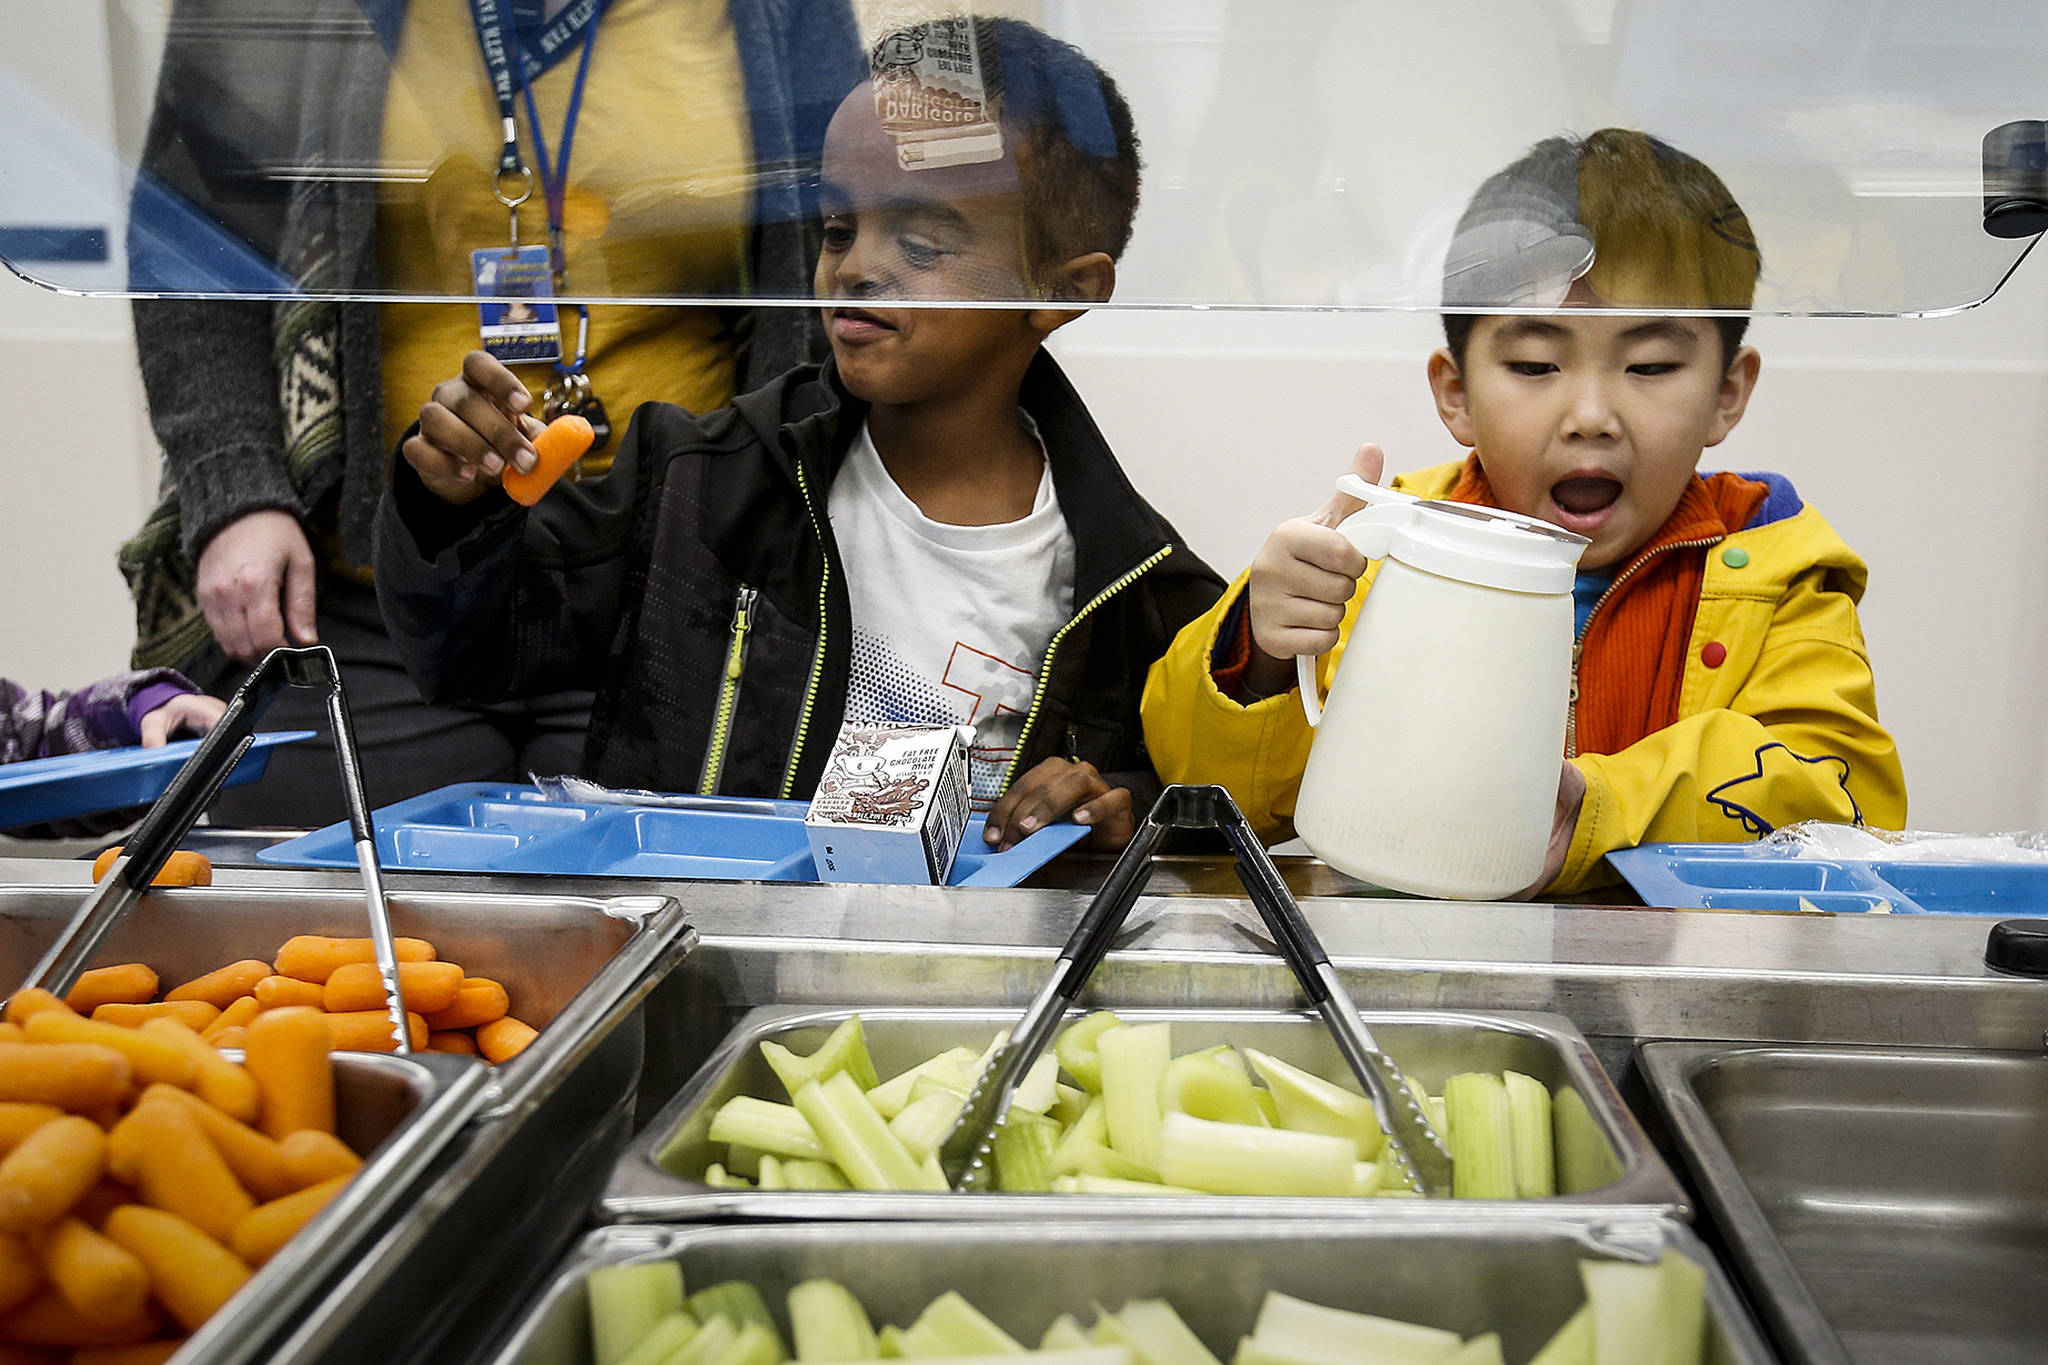 Kindergartner Maereg Andualem (left) checks out a carrot while fellow classmate Alex Shim helps himself to some dressing during lunchtime at Lynndale Elementary School in Lynnwood on Thursday, Nov. 30. (Ian Terry / The Herald)